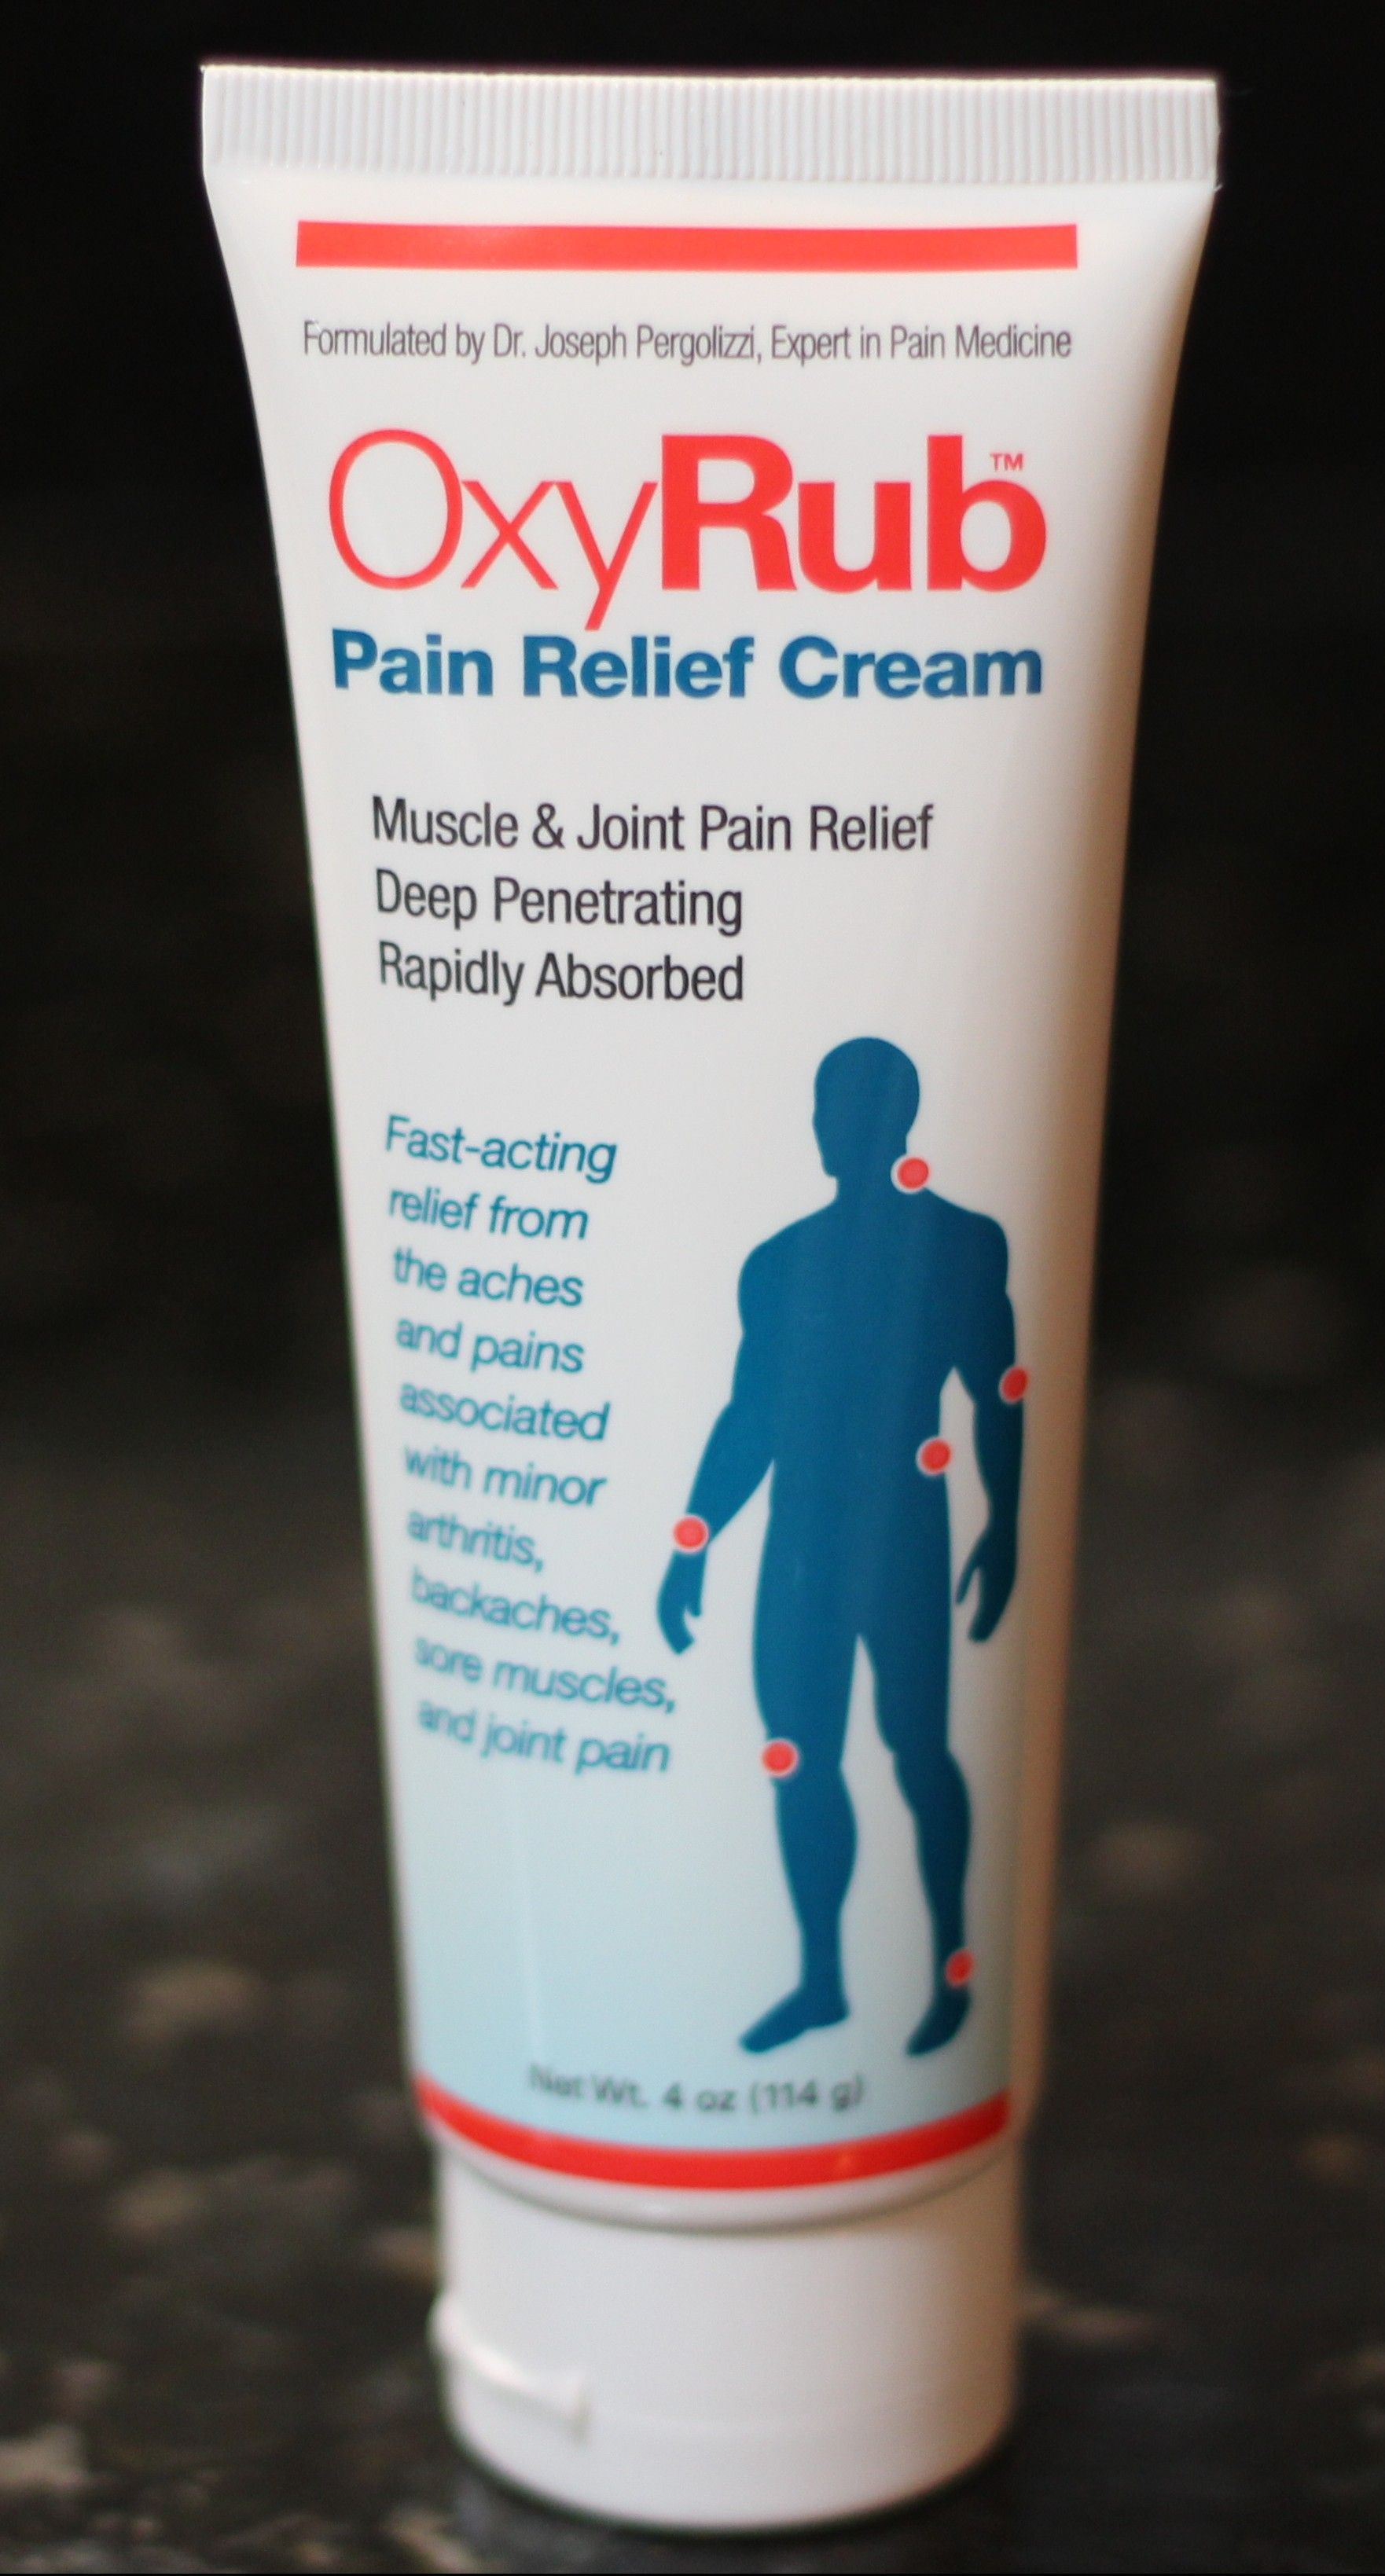 Oxyrub pain relief cream review and coupon code organizing oxyrub pain relief cream review and coupon code fandeluxe Images